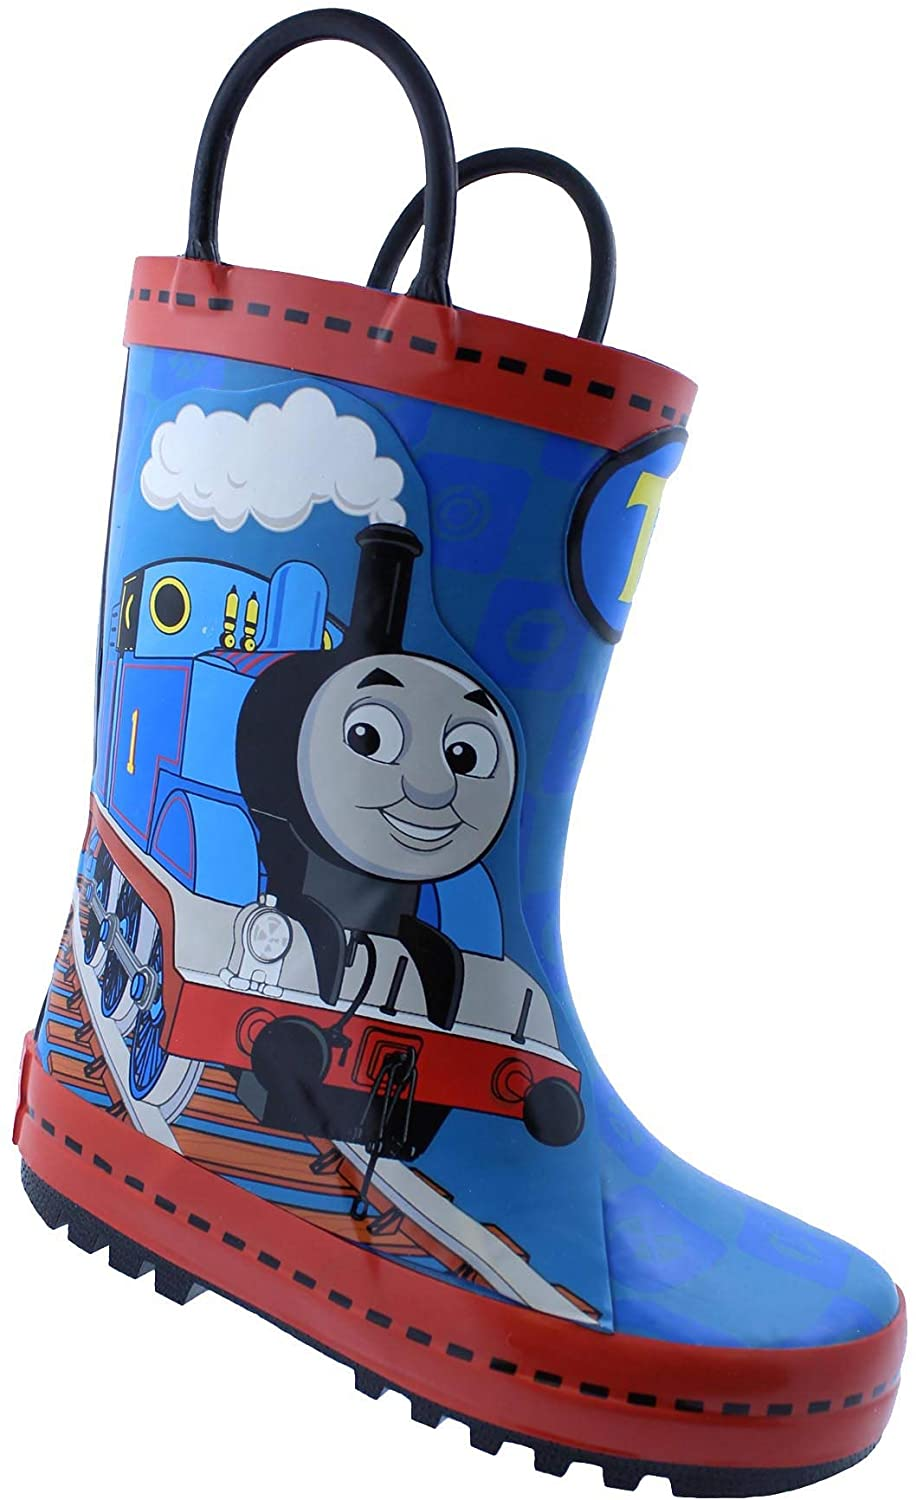 Thomas The Train Toddler Boy's Pull-On Rubber Rain Boots